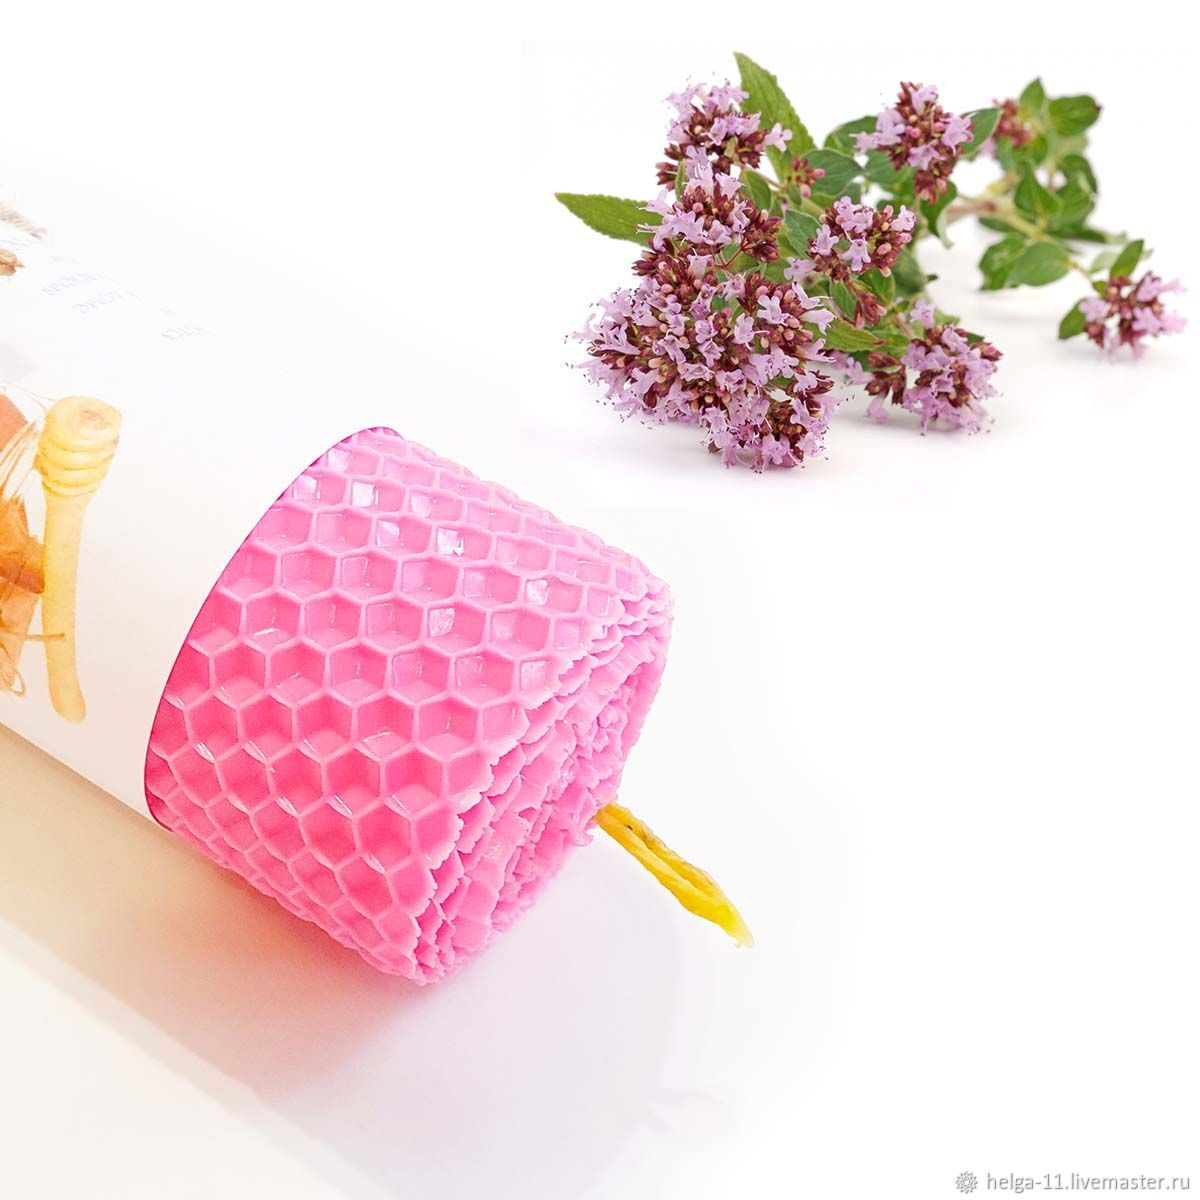 Honey candle-Pink with oregano 13h4,7,  cm, Candles, St. Petersburg,  Фото №1